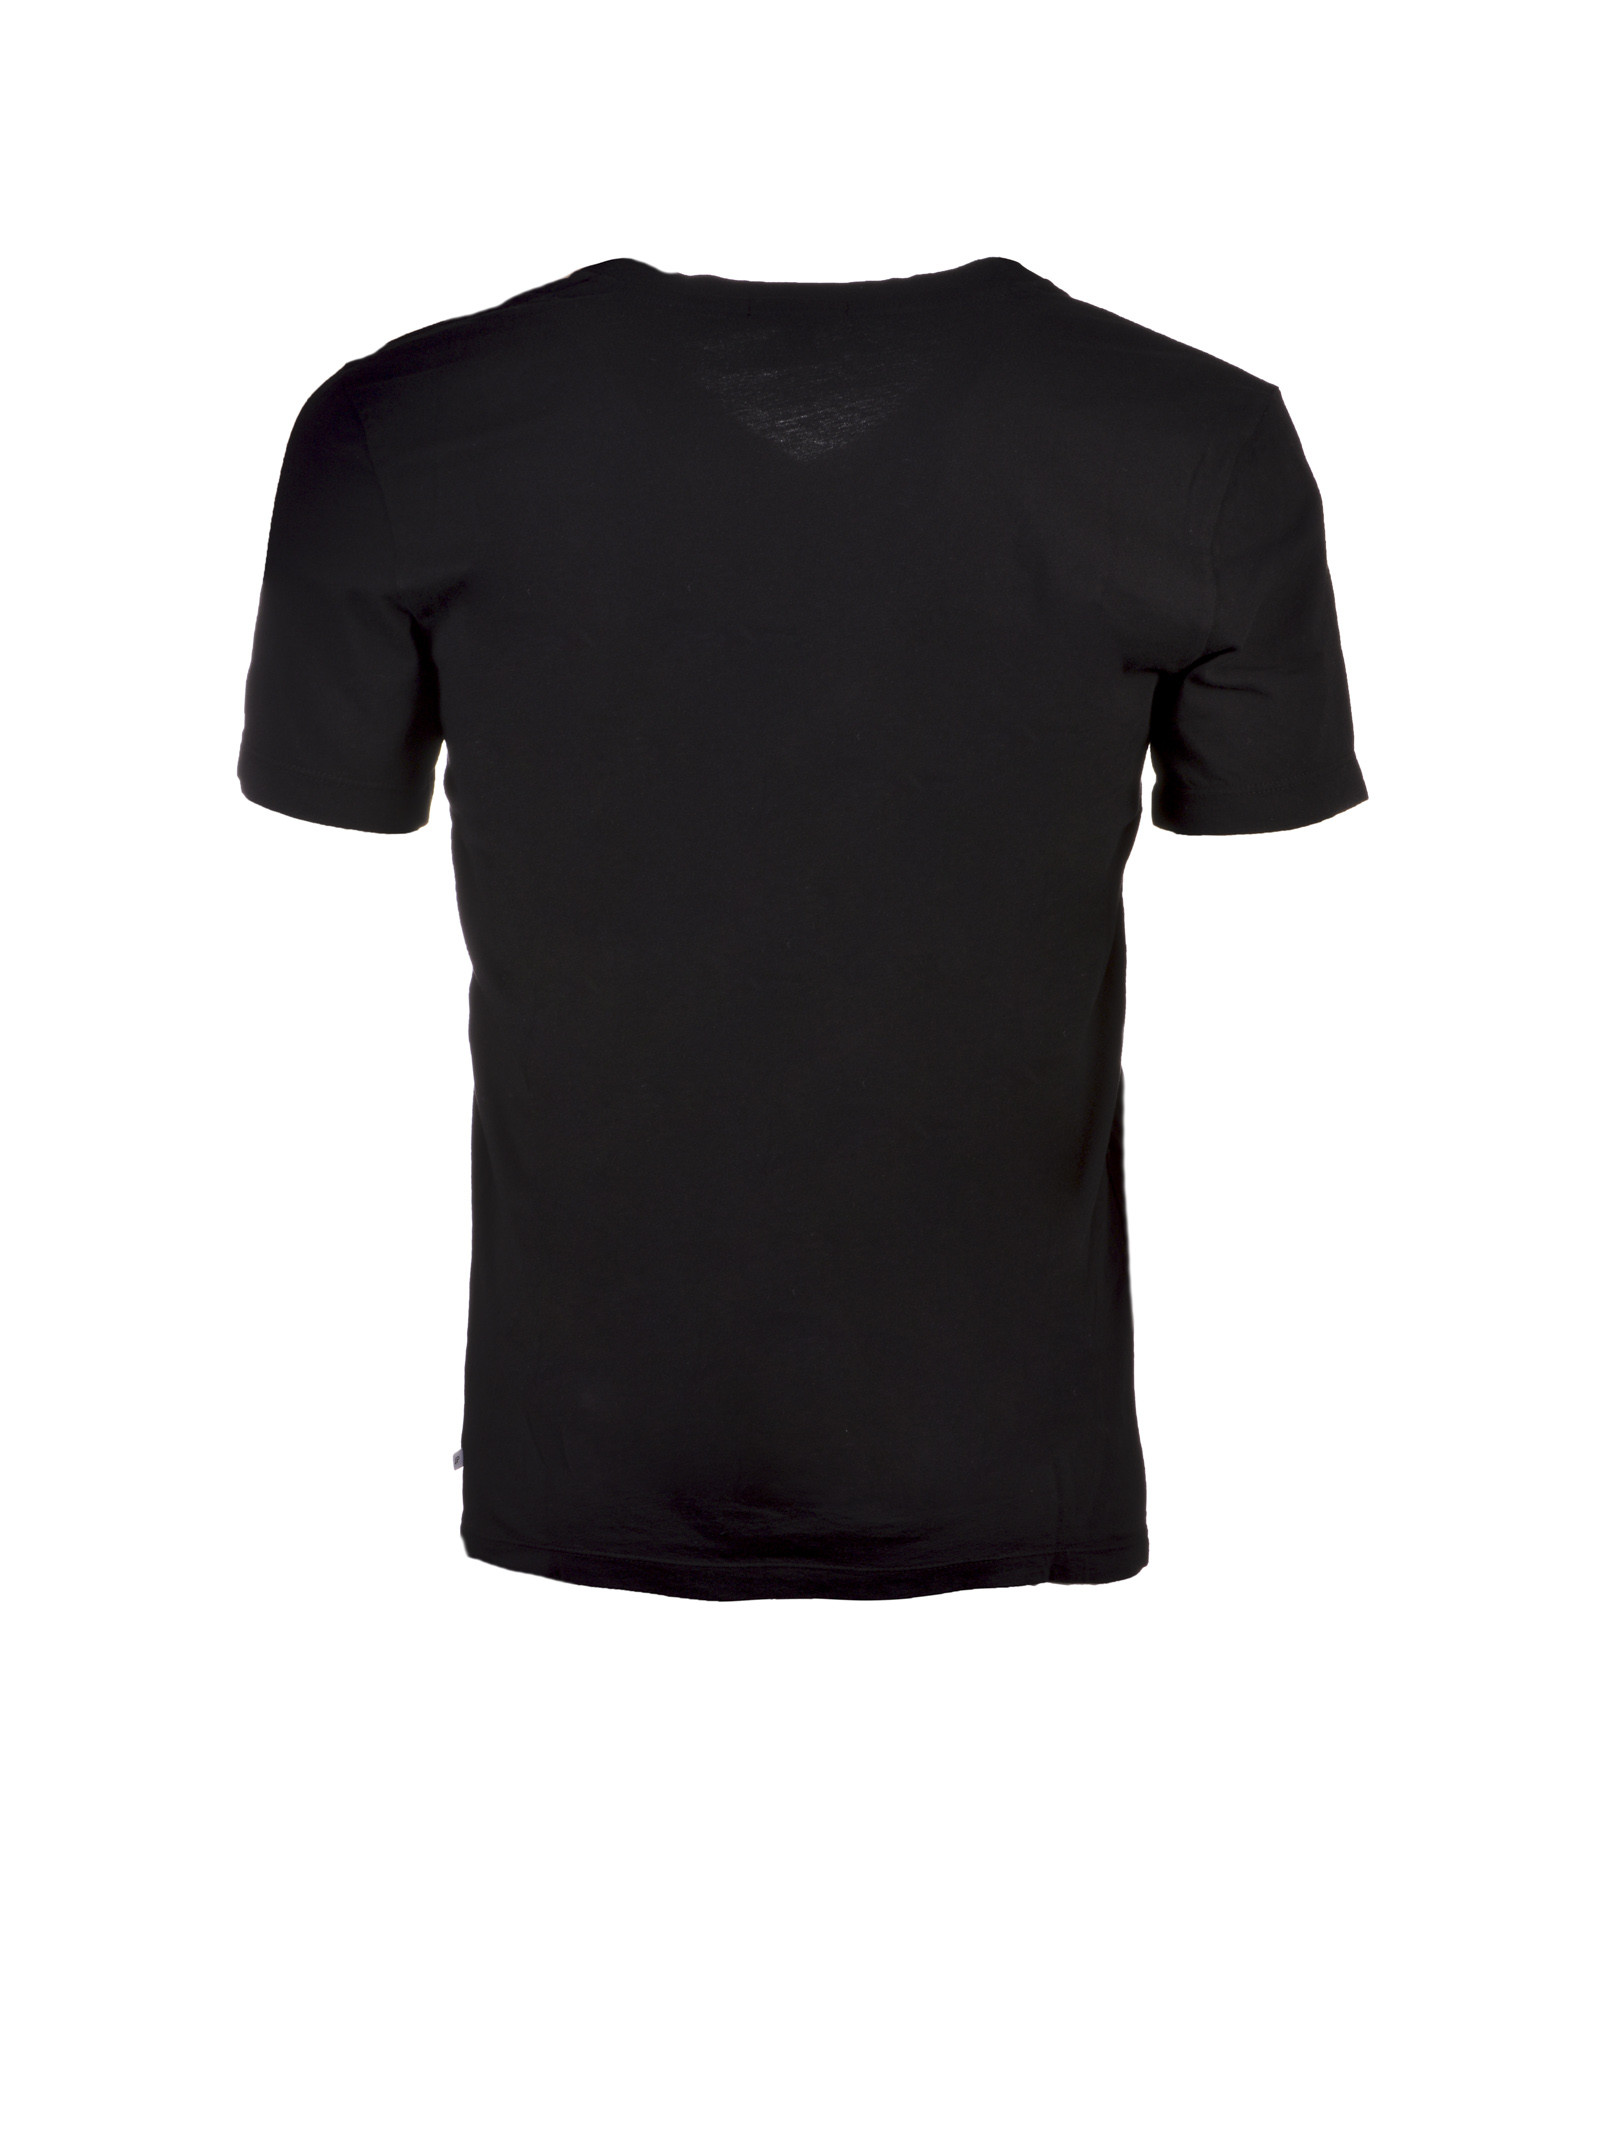 James perse james perse v neck t shirt mlj3352 blk for James perse t shirts sale